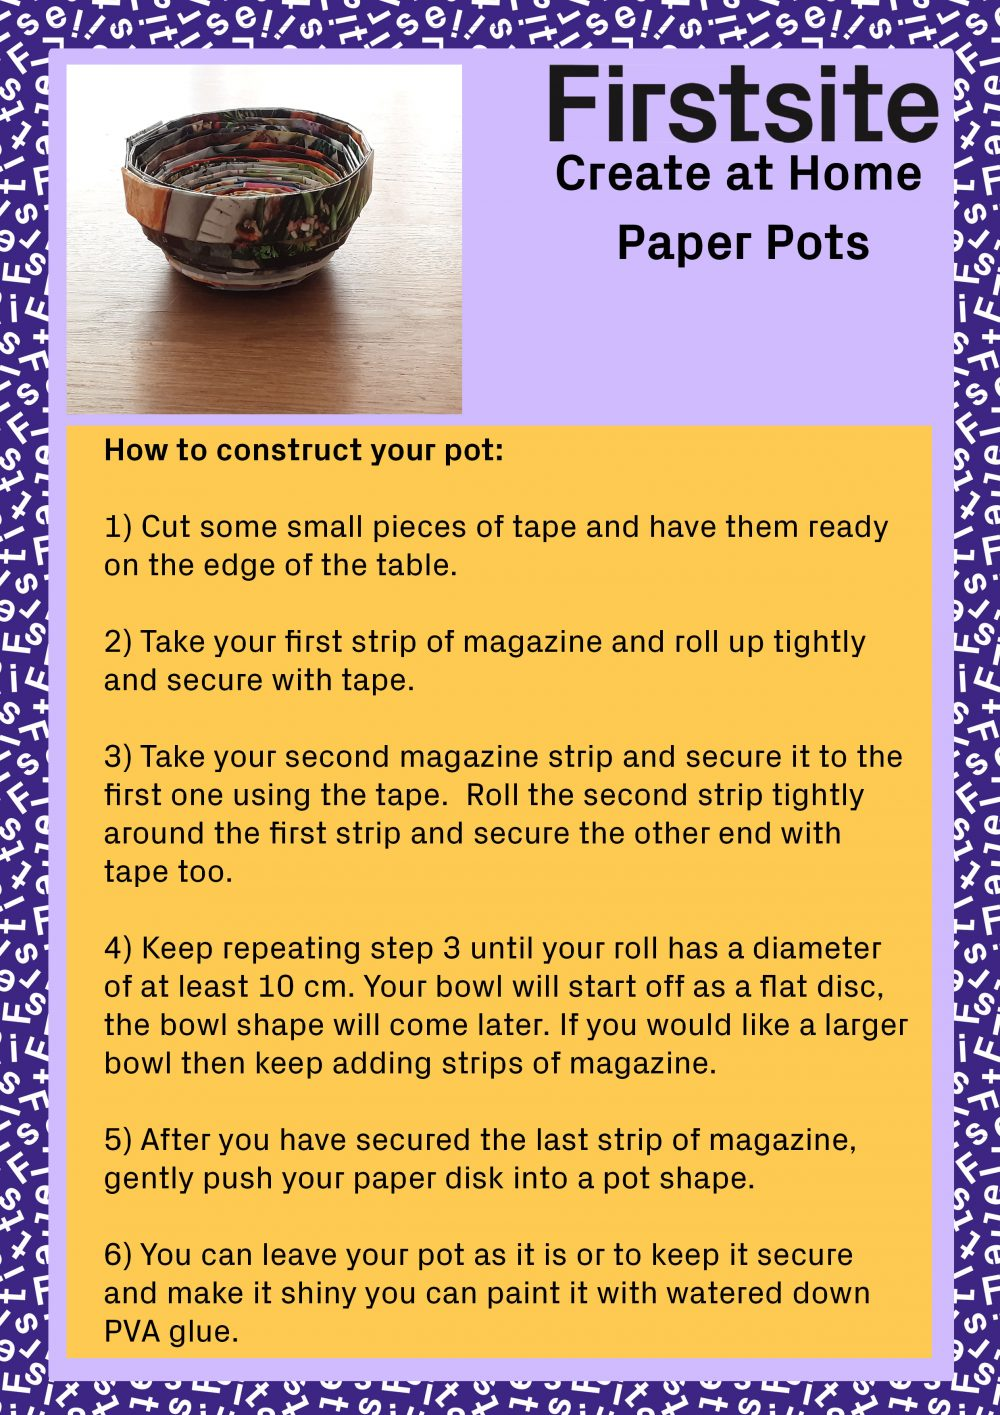 Create at Home Paper pot making activity instructions - 2 of 2